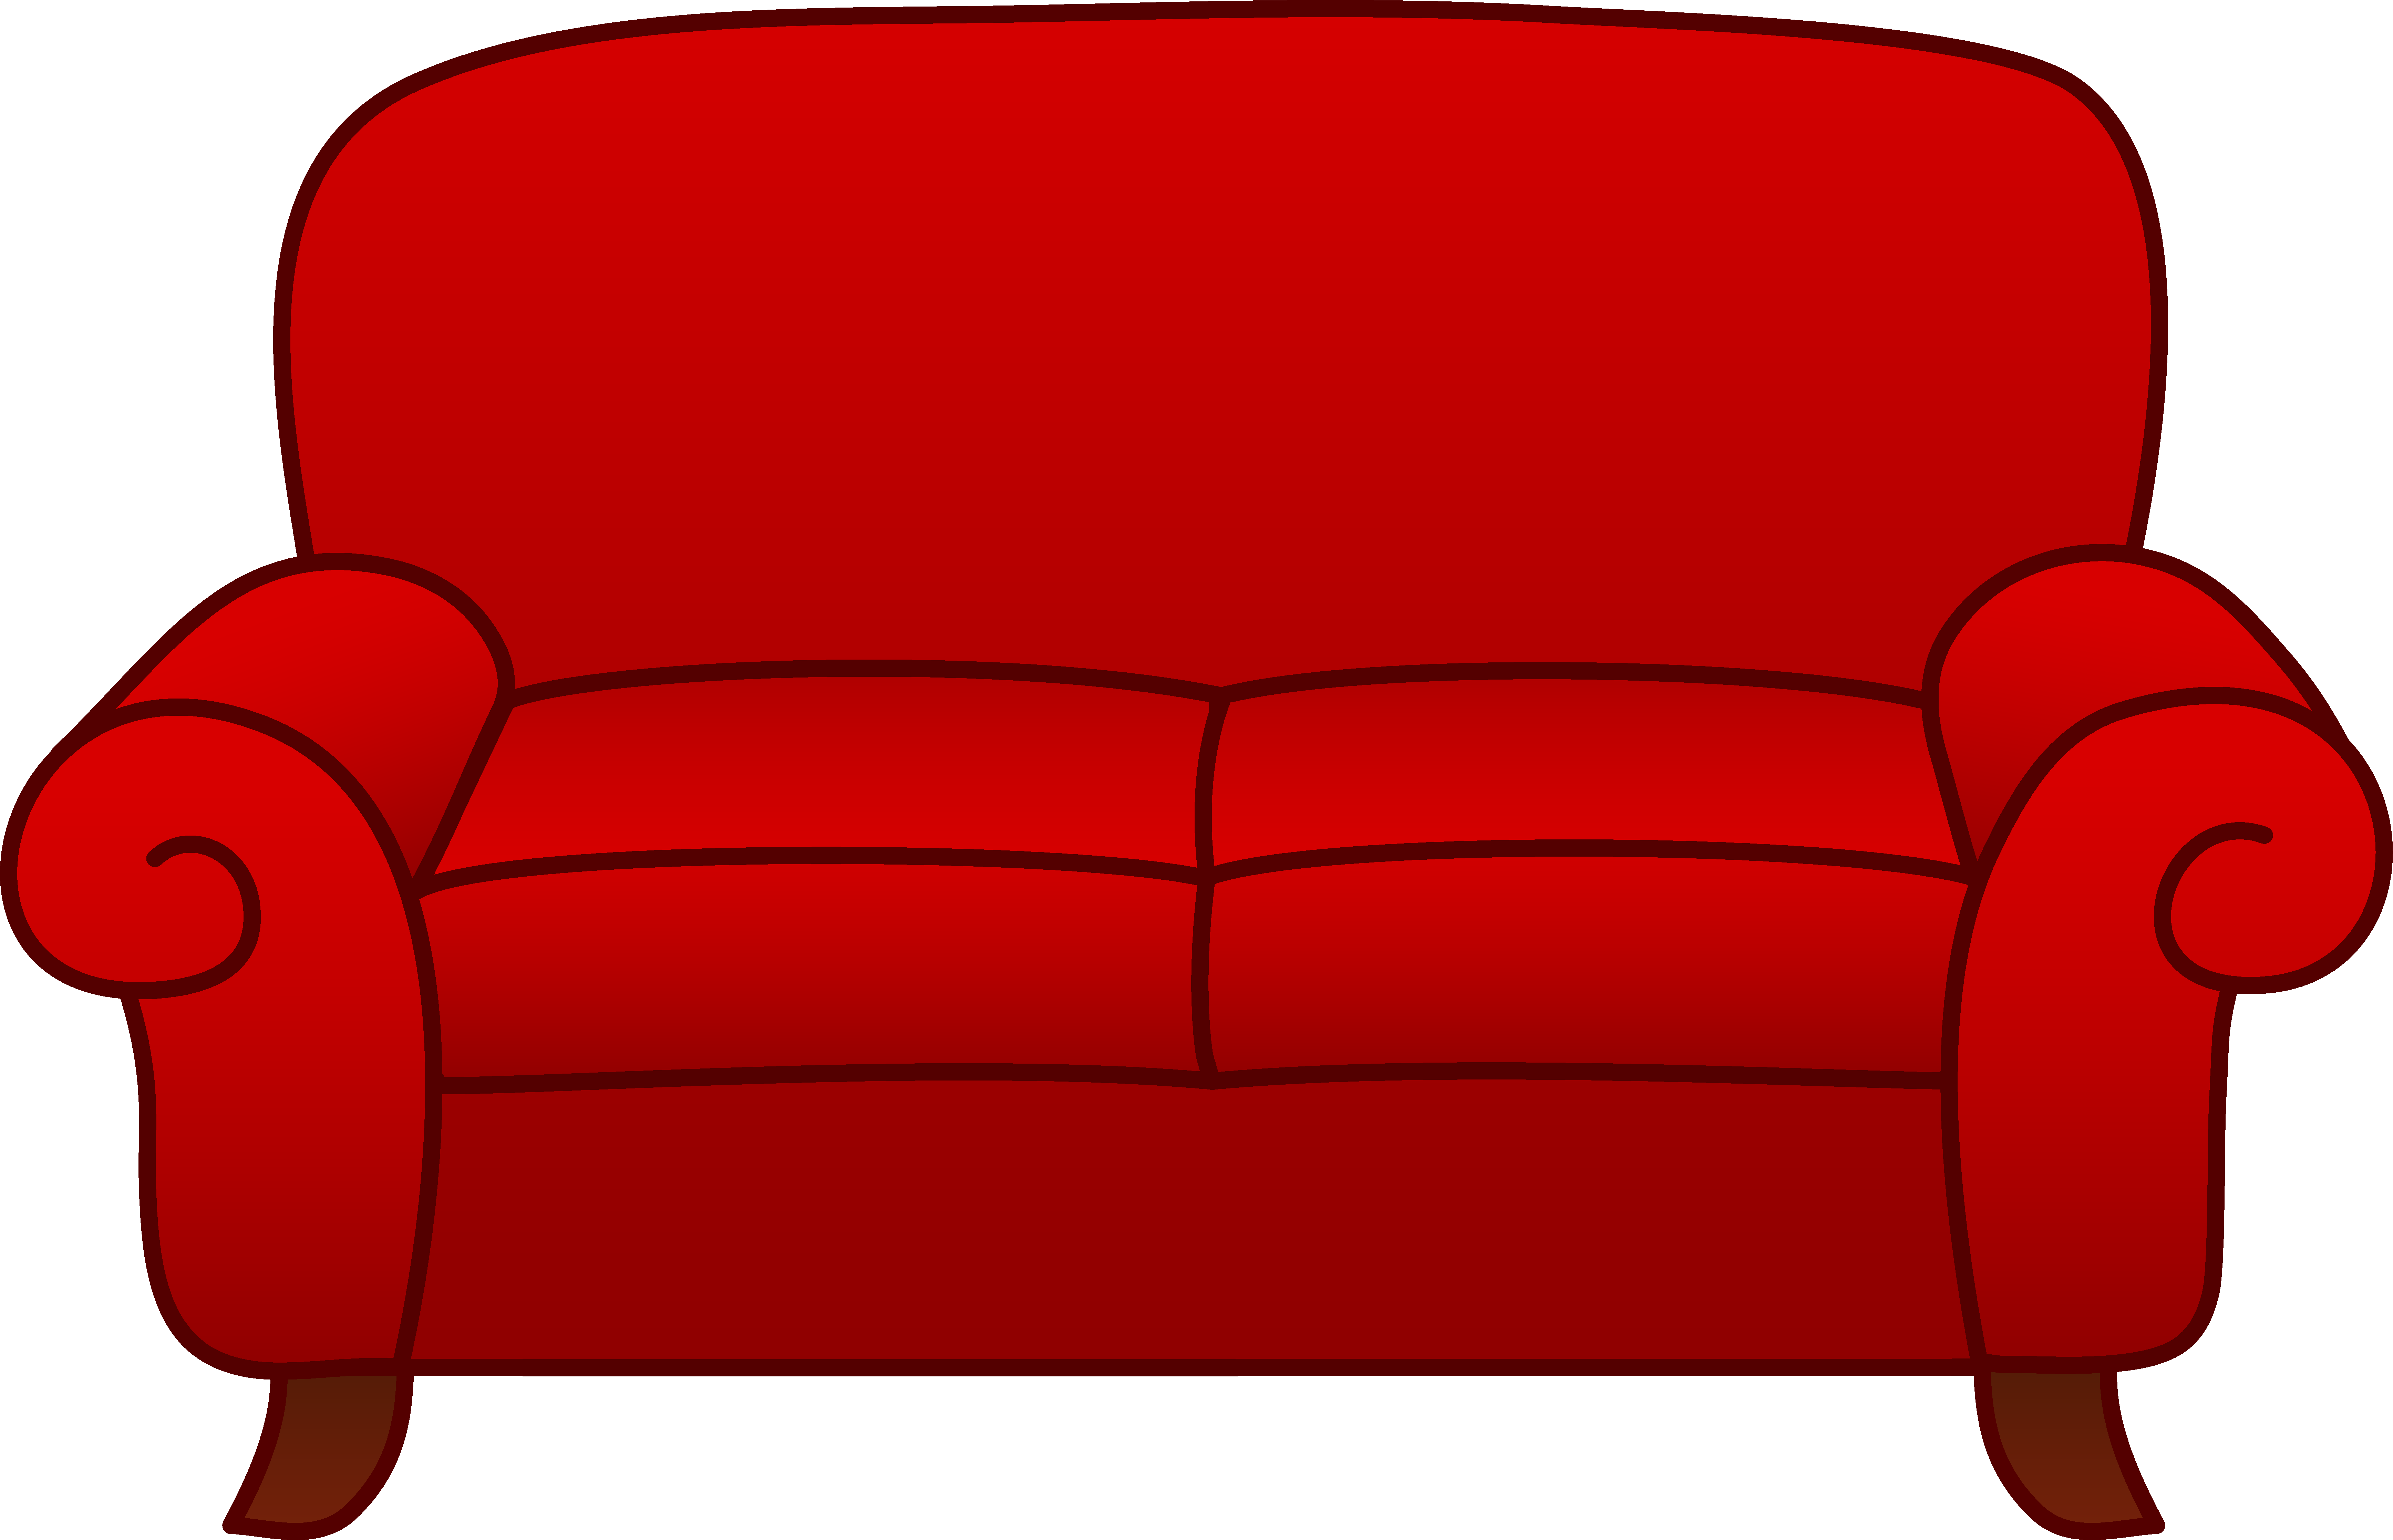 Clip Art Couch